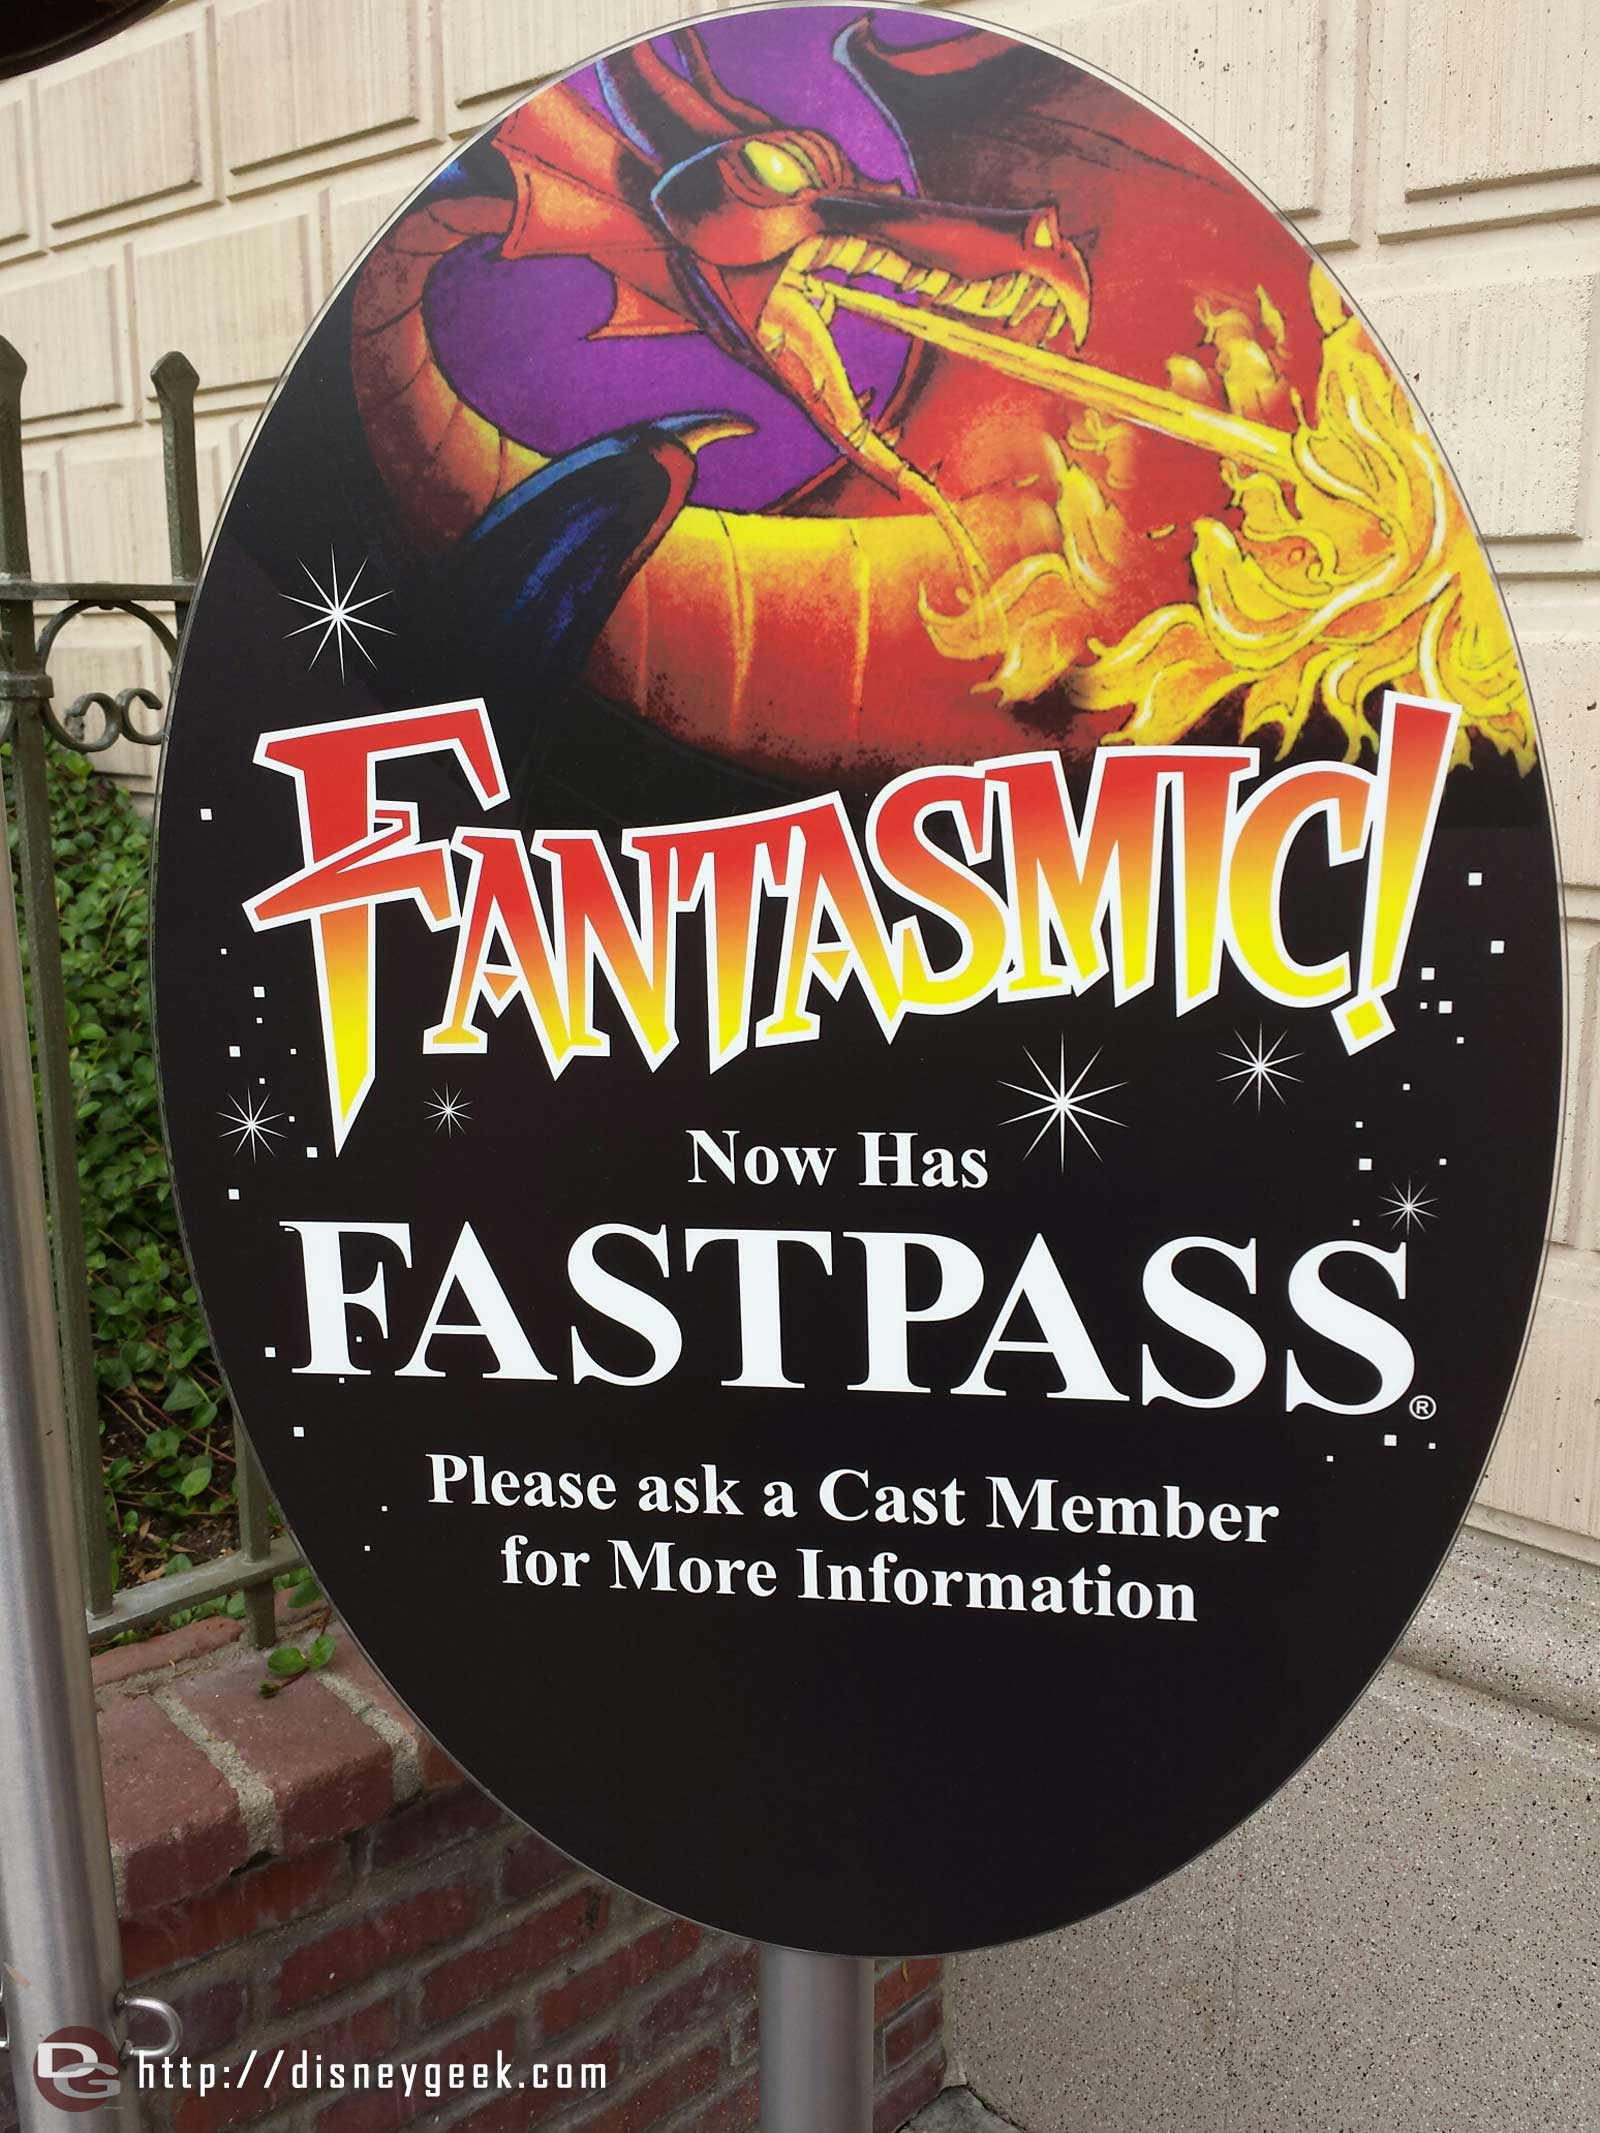 #Fantasmic now has FastPass at #Disneyland